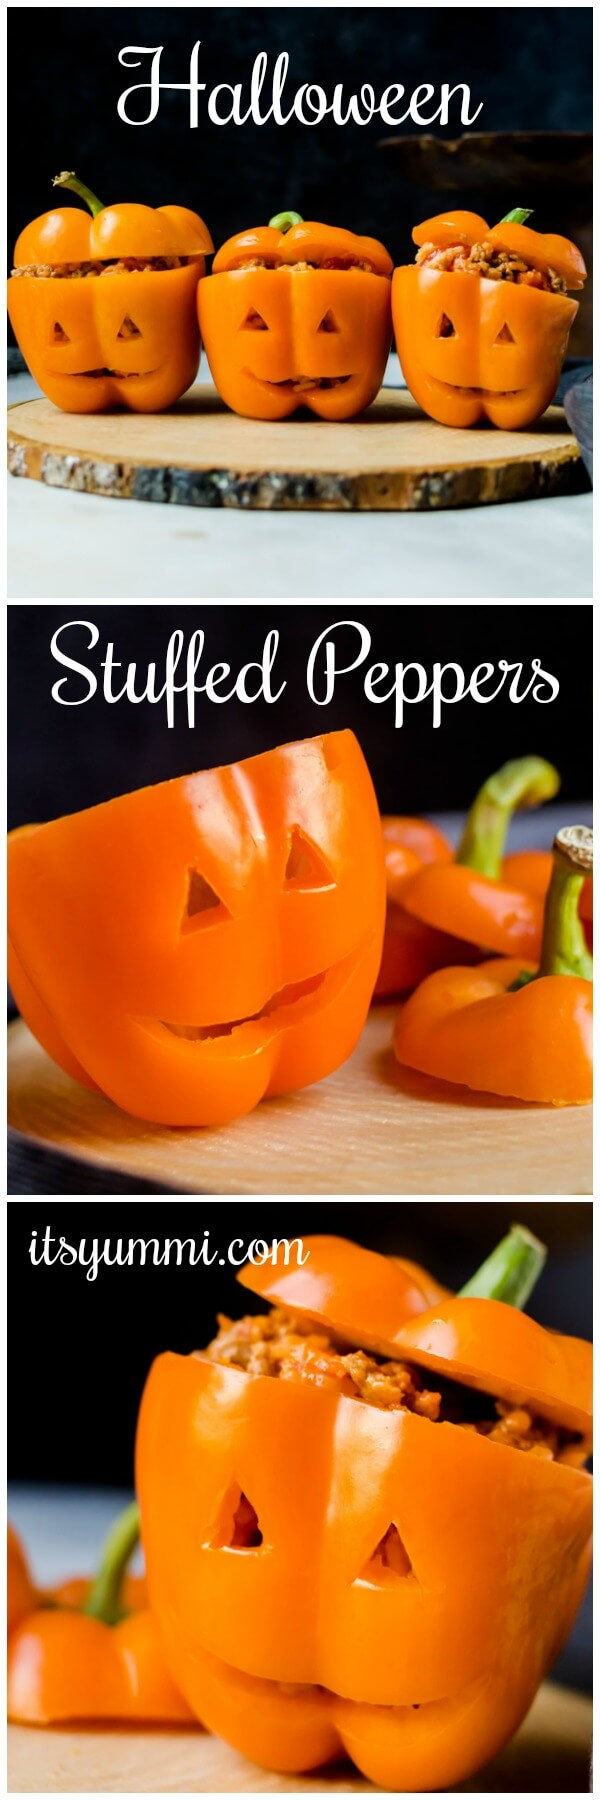 halloween stuffed peppers jack o lanterns its yummi bites of